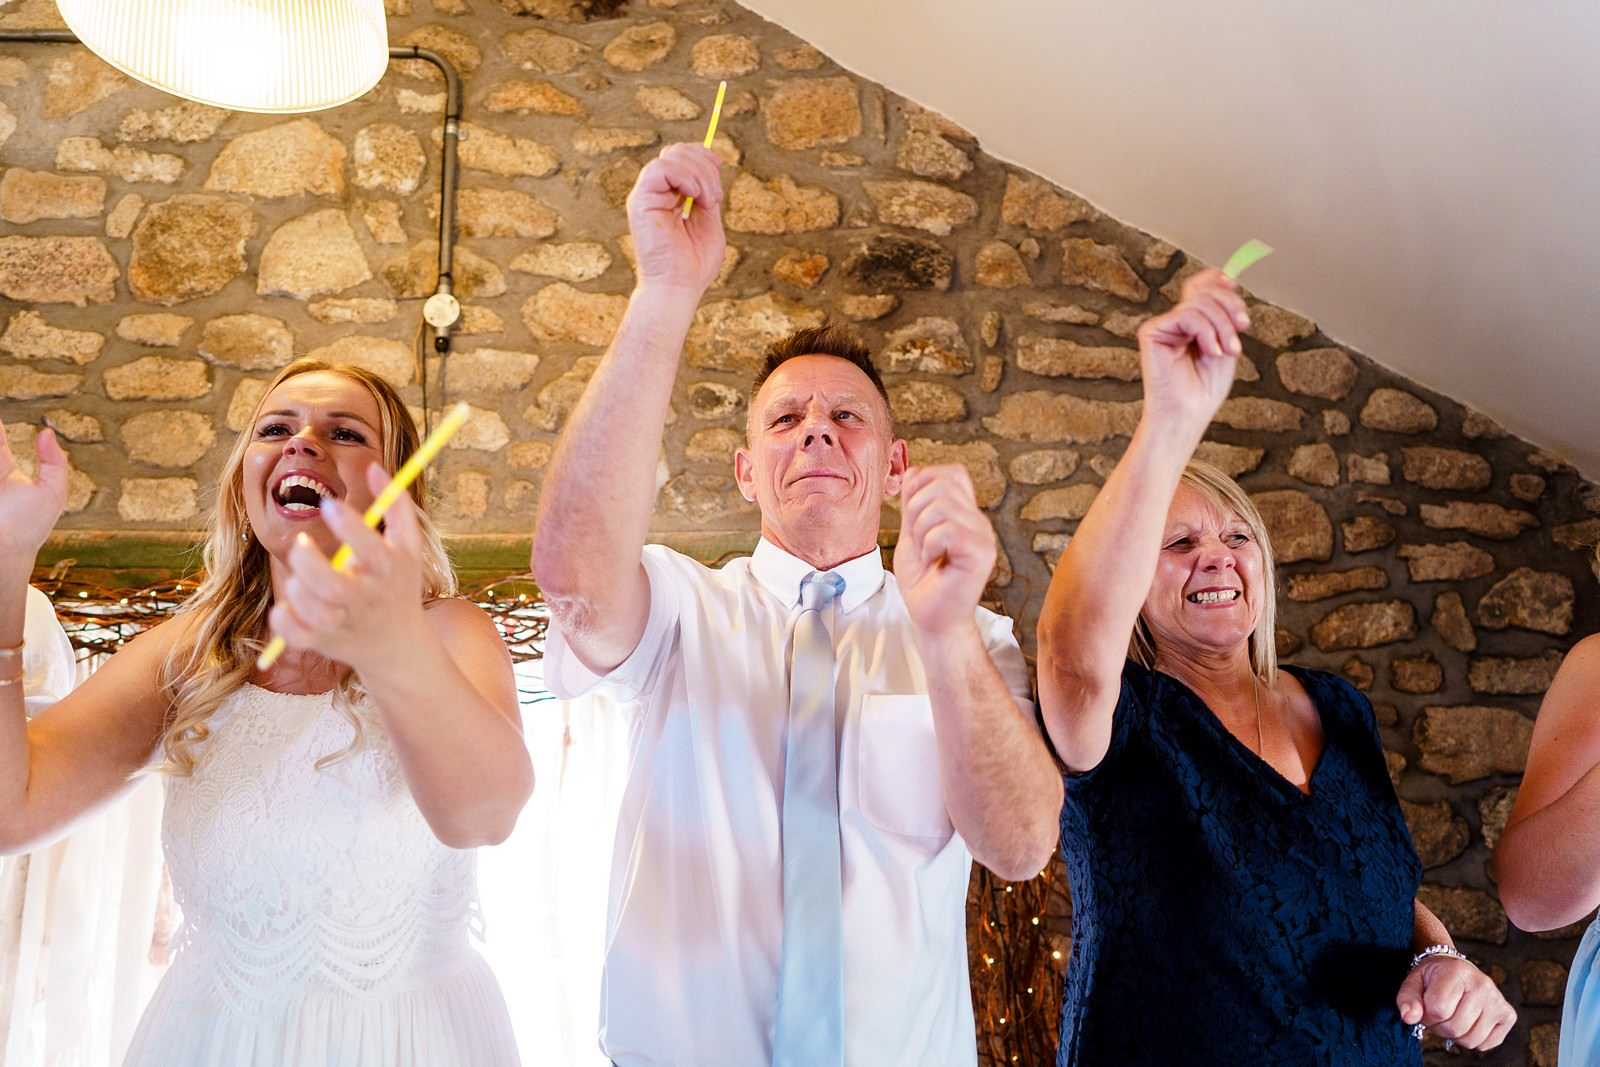 crazy wedding party at knightor winery 99